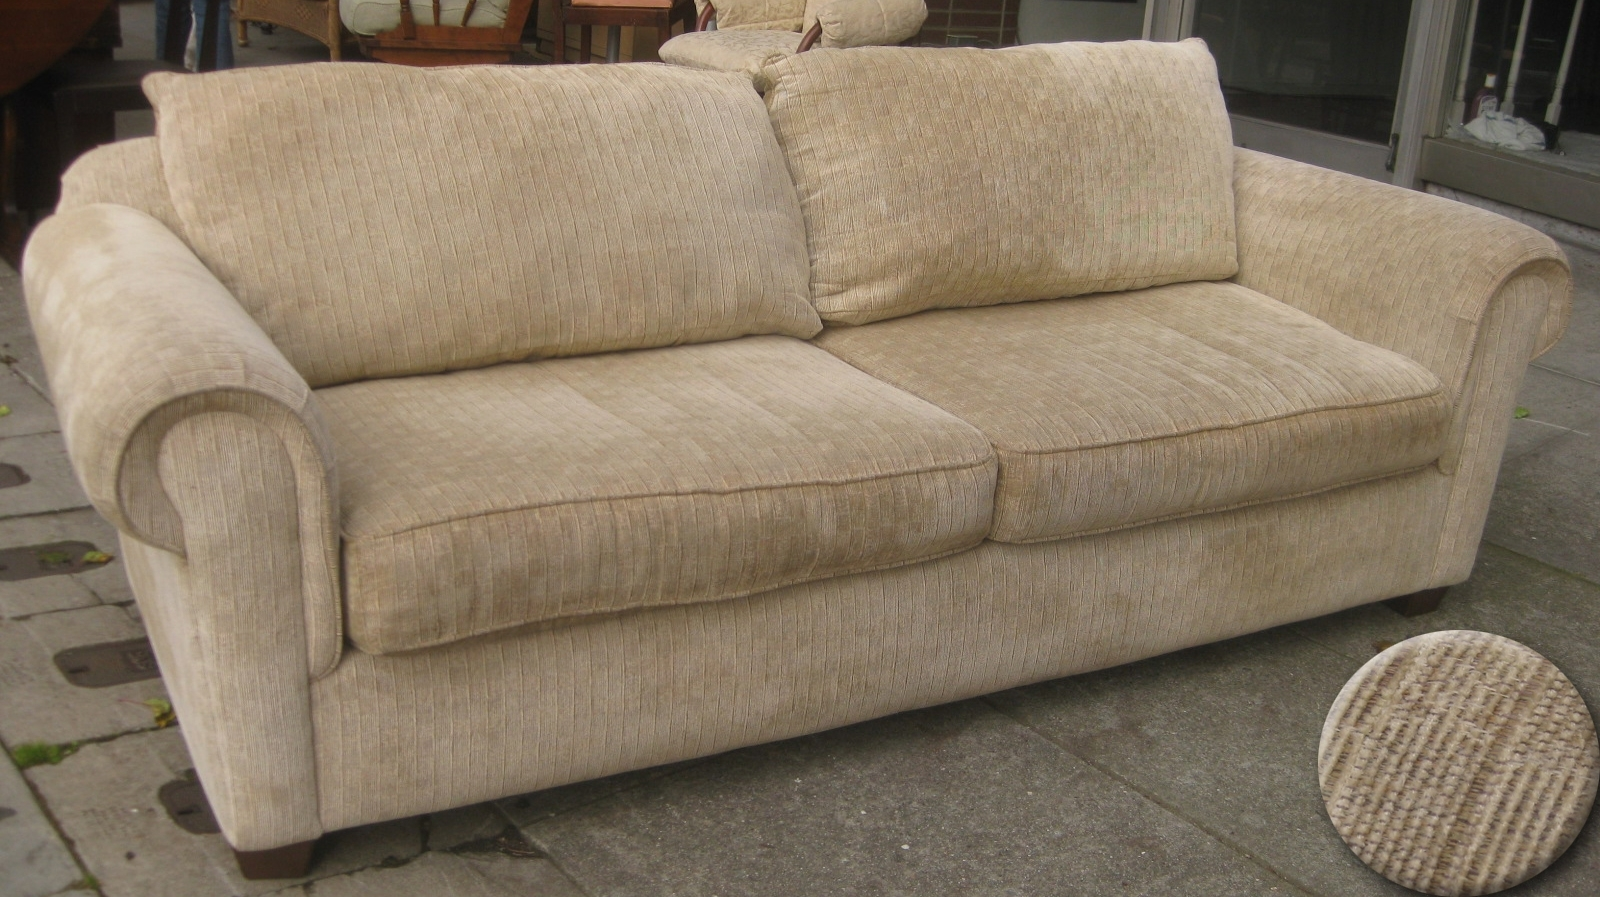 Sofa : Sofa Soft Beds Material Leather Sleeper Sectionals Pillows In Soft Sofas (View 8 of 10)